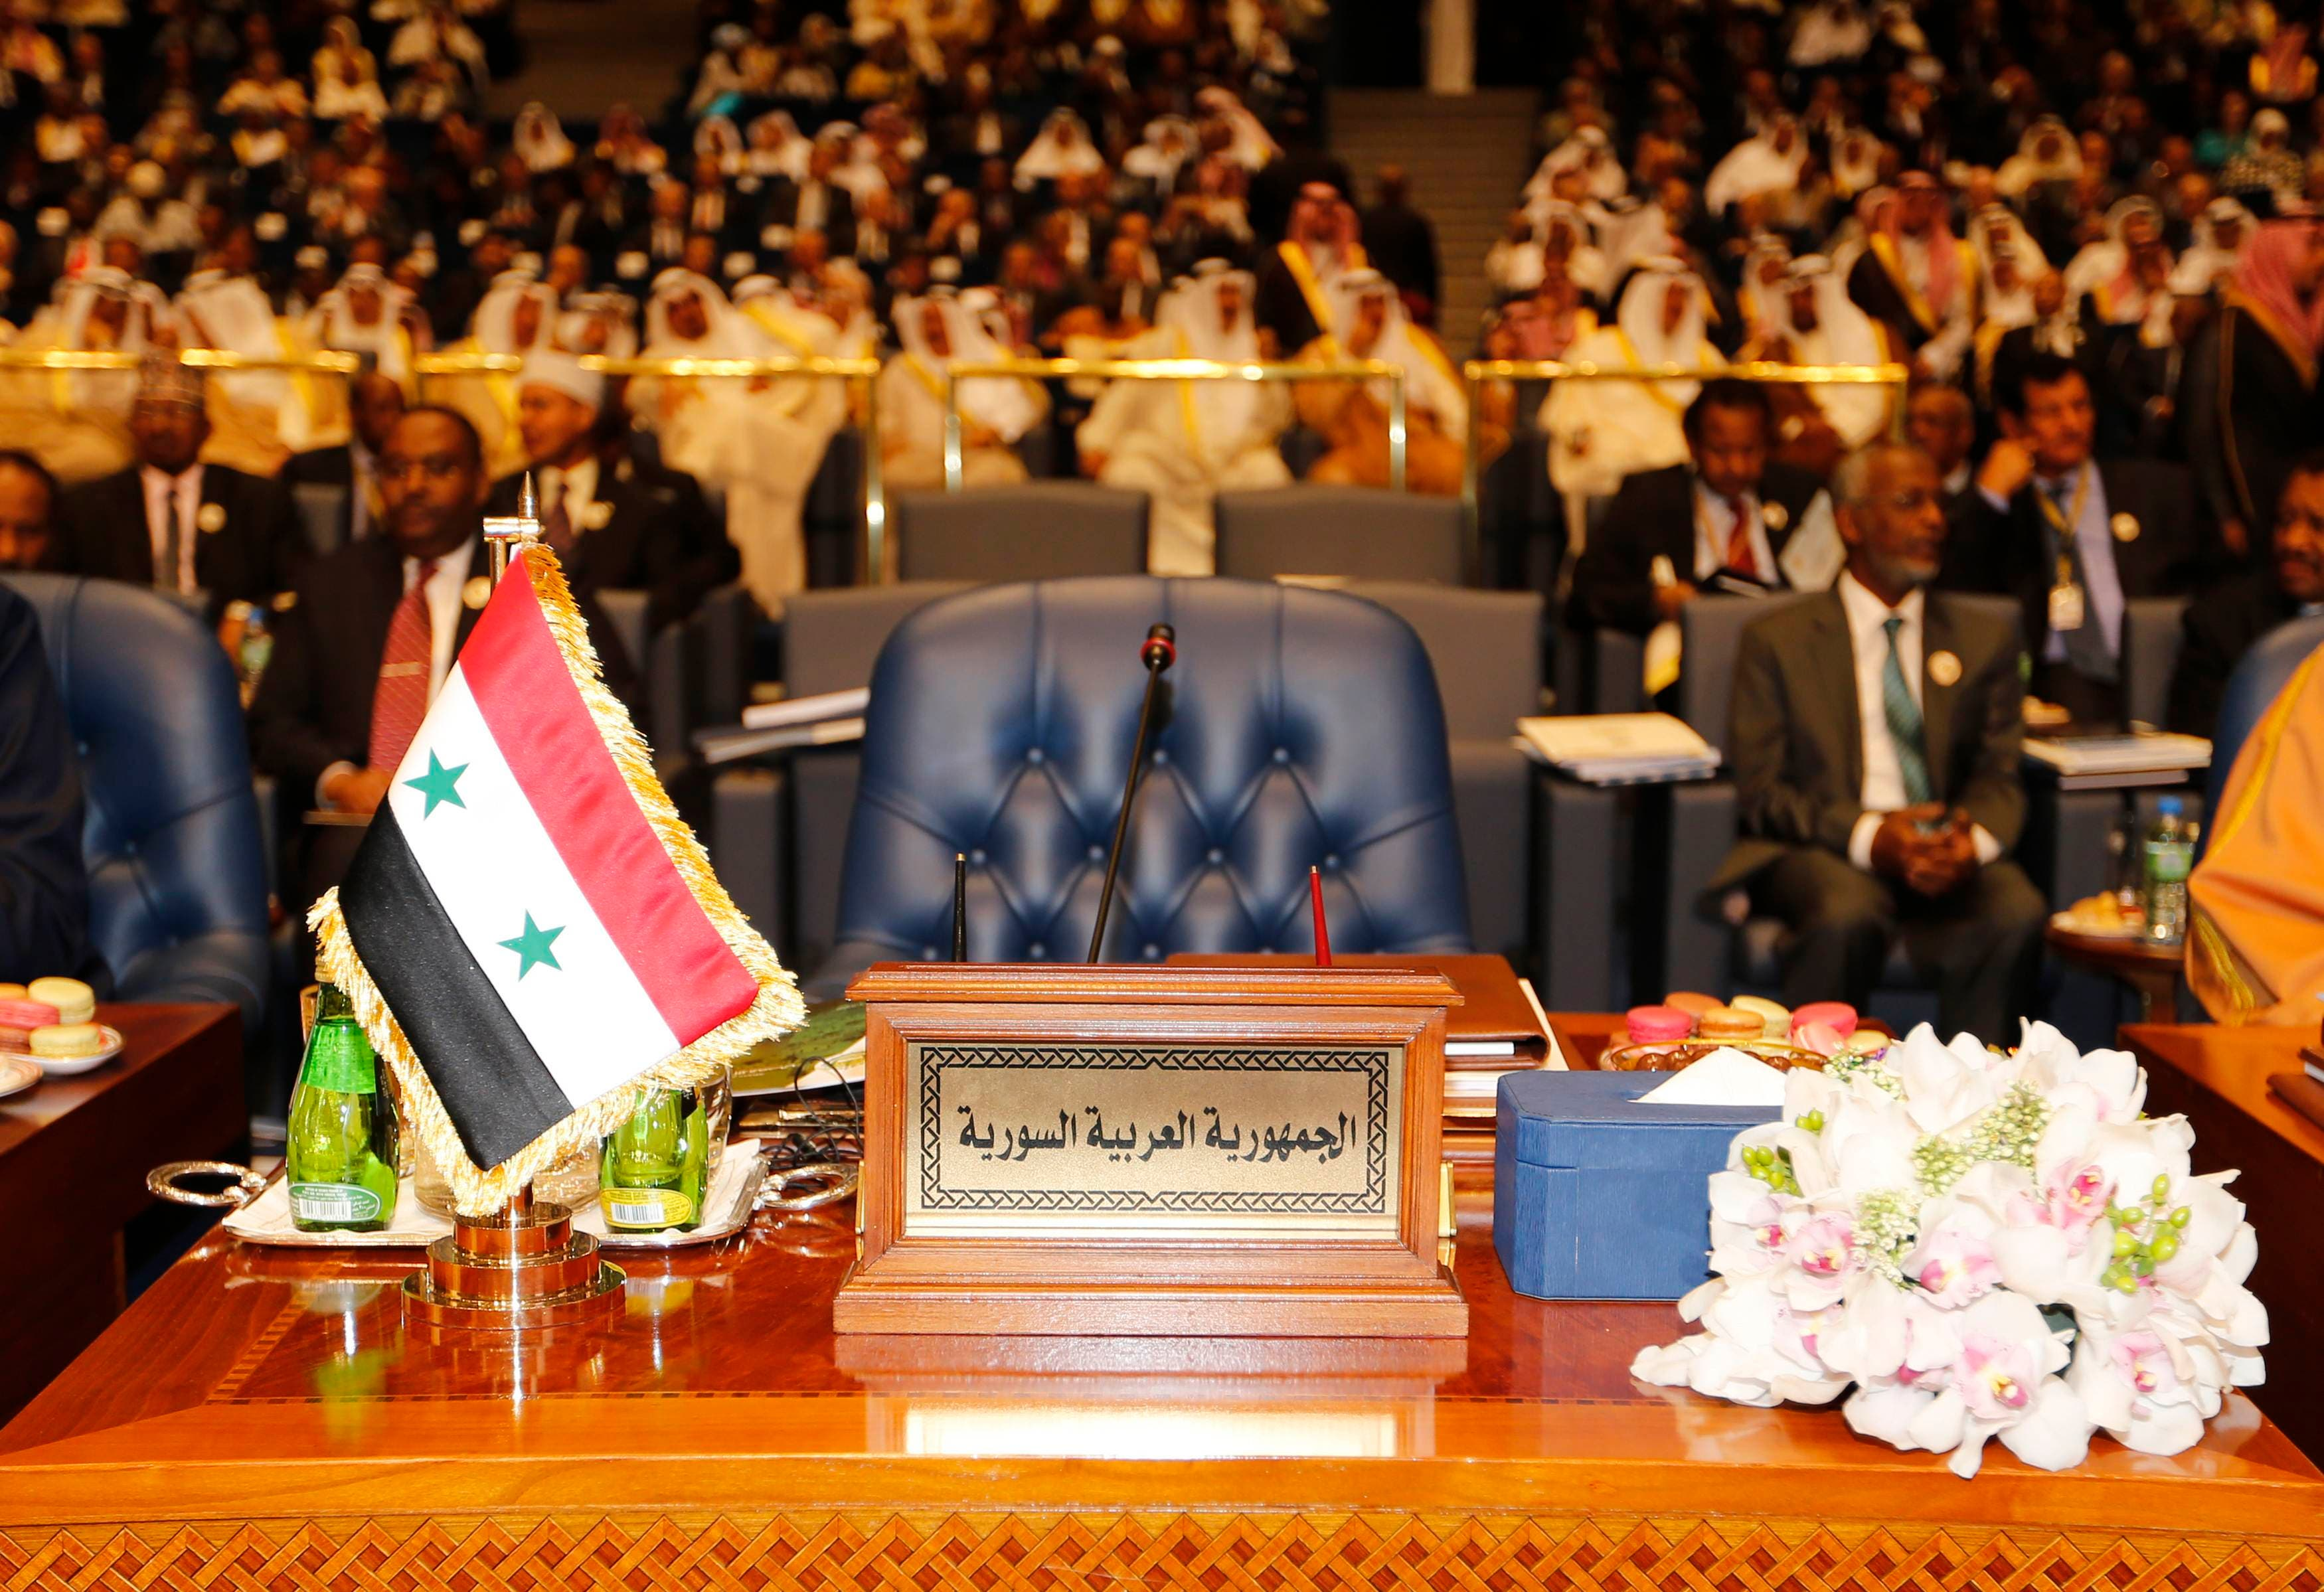 ARABS-SUMMIT/ The empty seat of the Syrian delegation is seen during the 25th Arab Summit in Kuwait City, March 25, 2014.